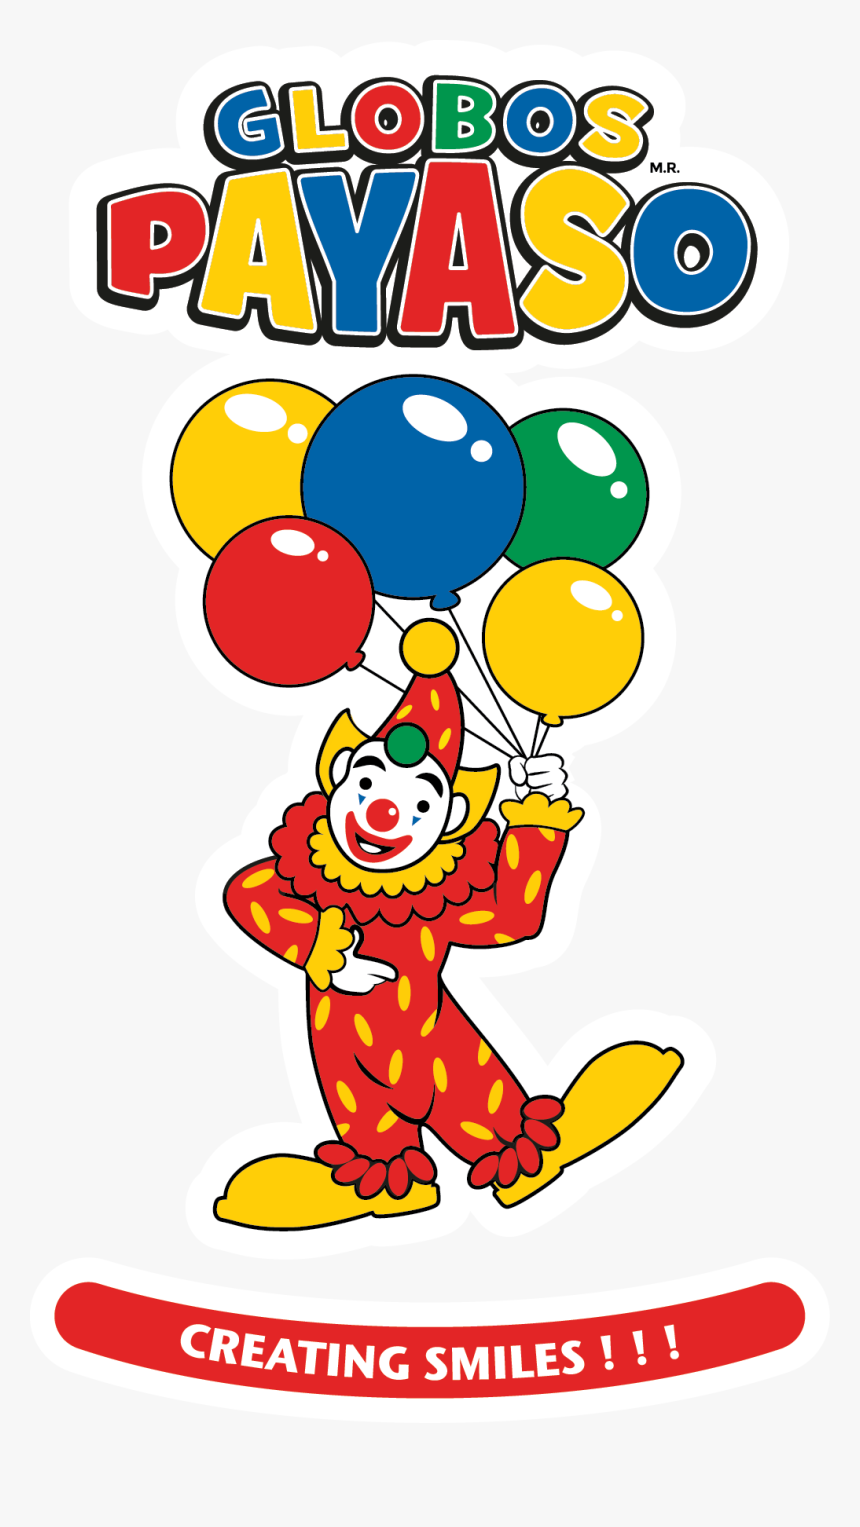 Transparent Globos Png - Globos El Payaso, Png Download, Free Download